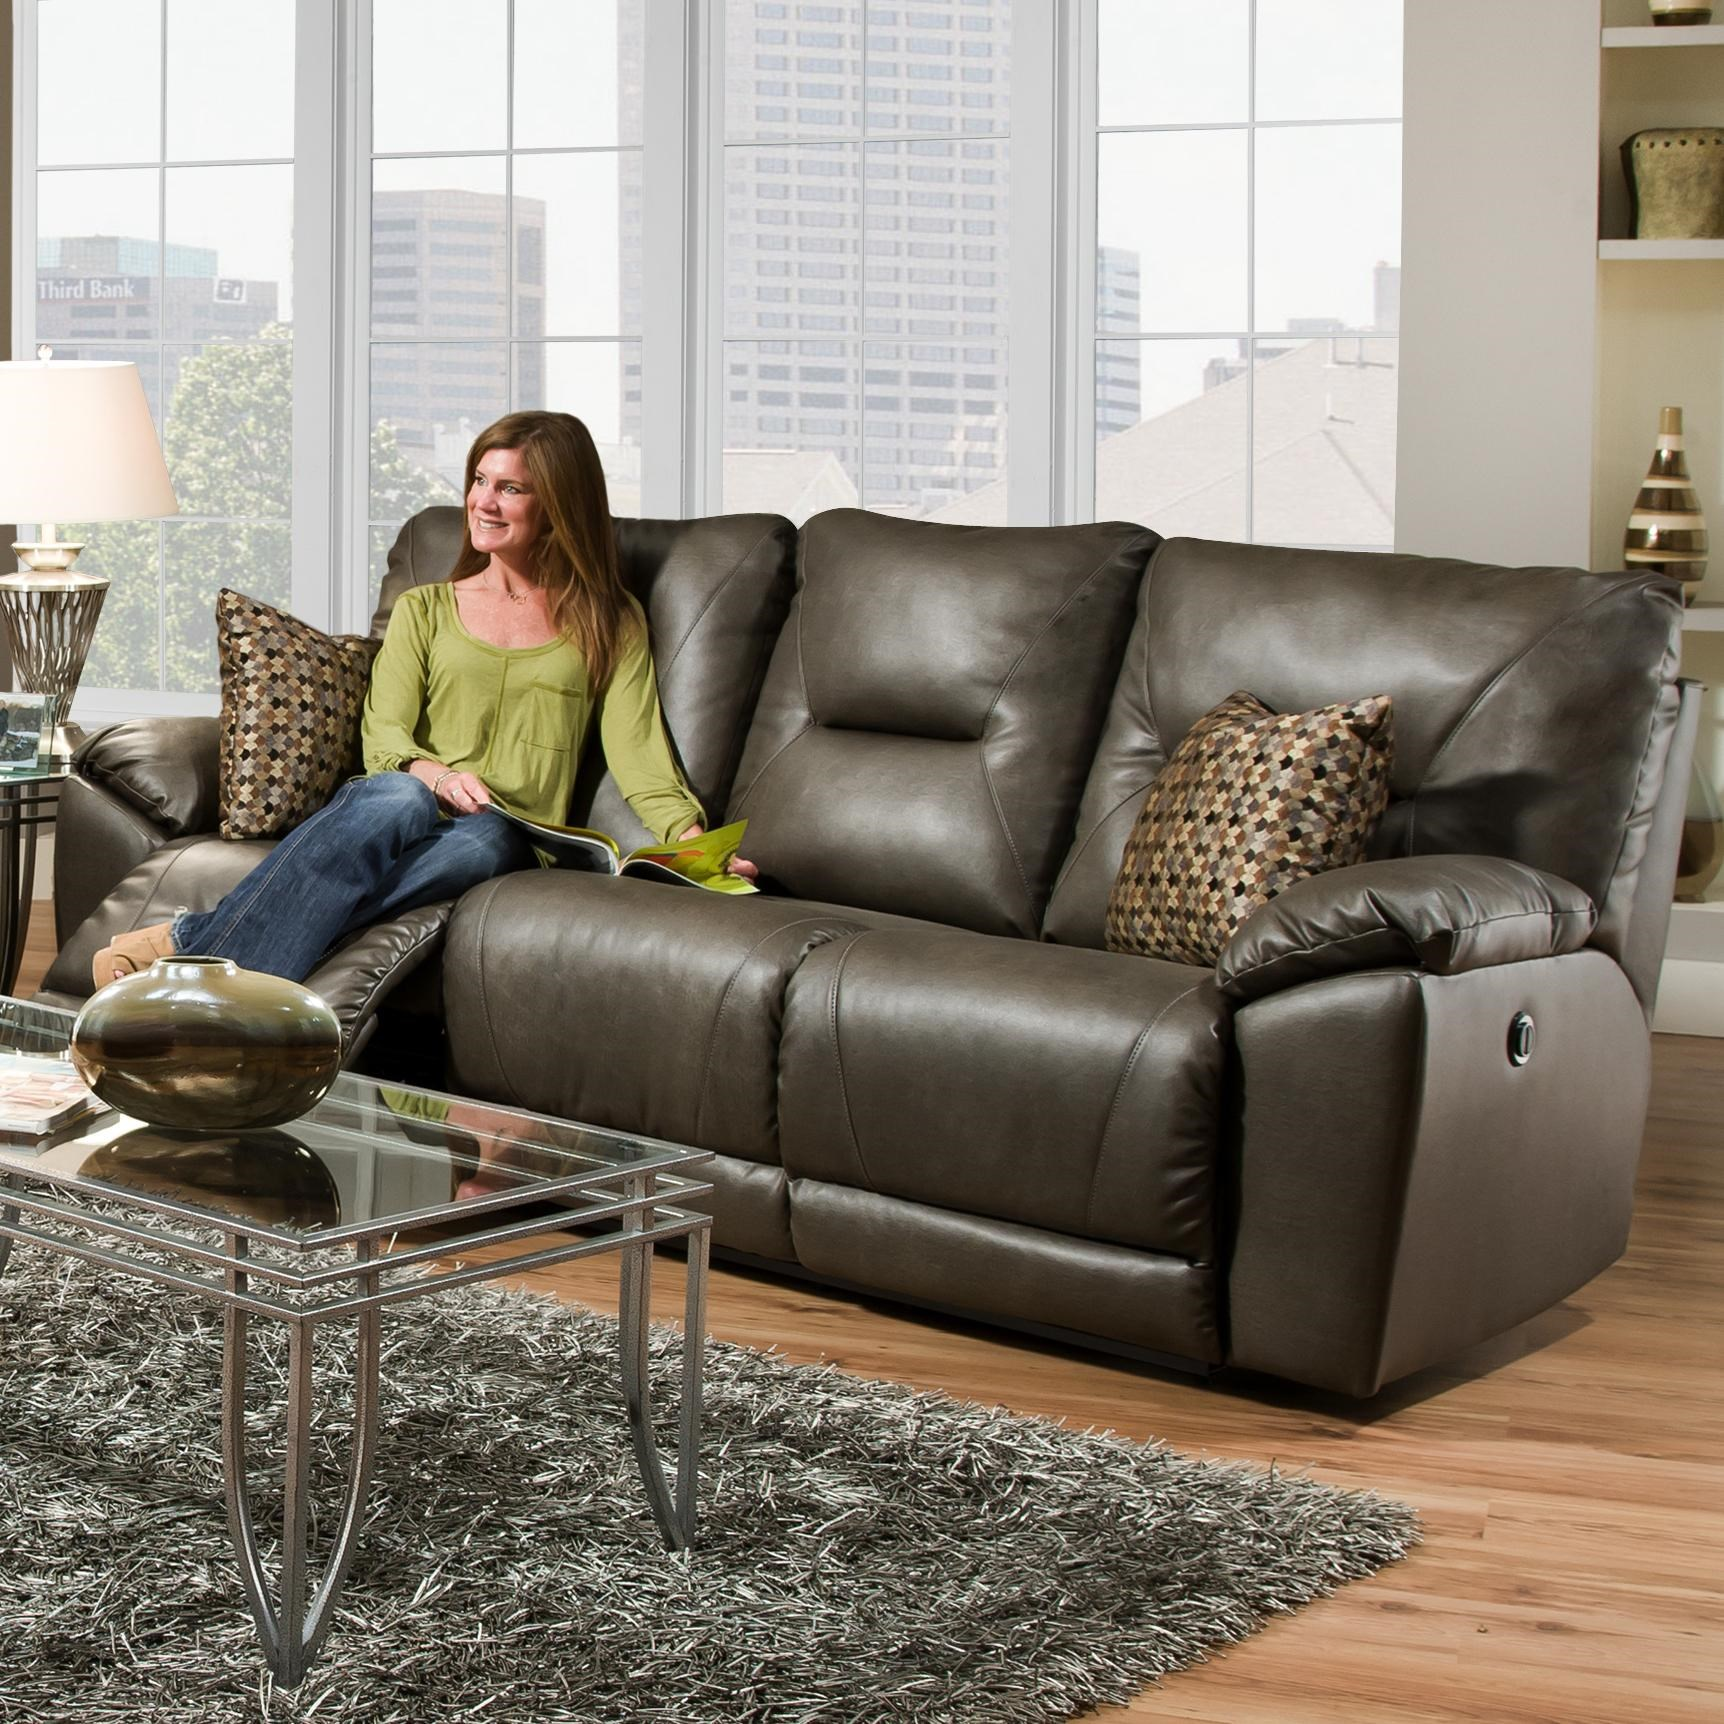 Southern Motion Dynamo Double Reclining Sofa with Pillows for Family Rooms - Furniture and ApplianceMart - Reclining Sofas  sc 1 st  Furniture and ApplianceMart & Southern Motion Dynamo Double Reclining Sofa with Pillows for ... islam-shia.org